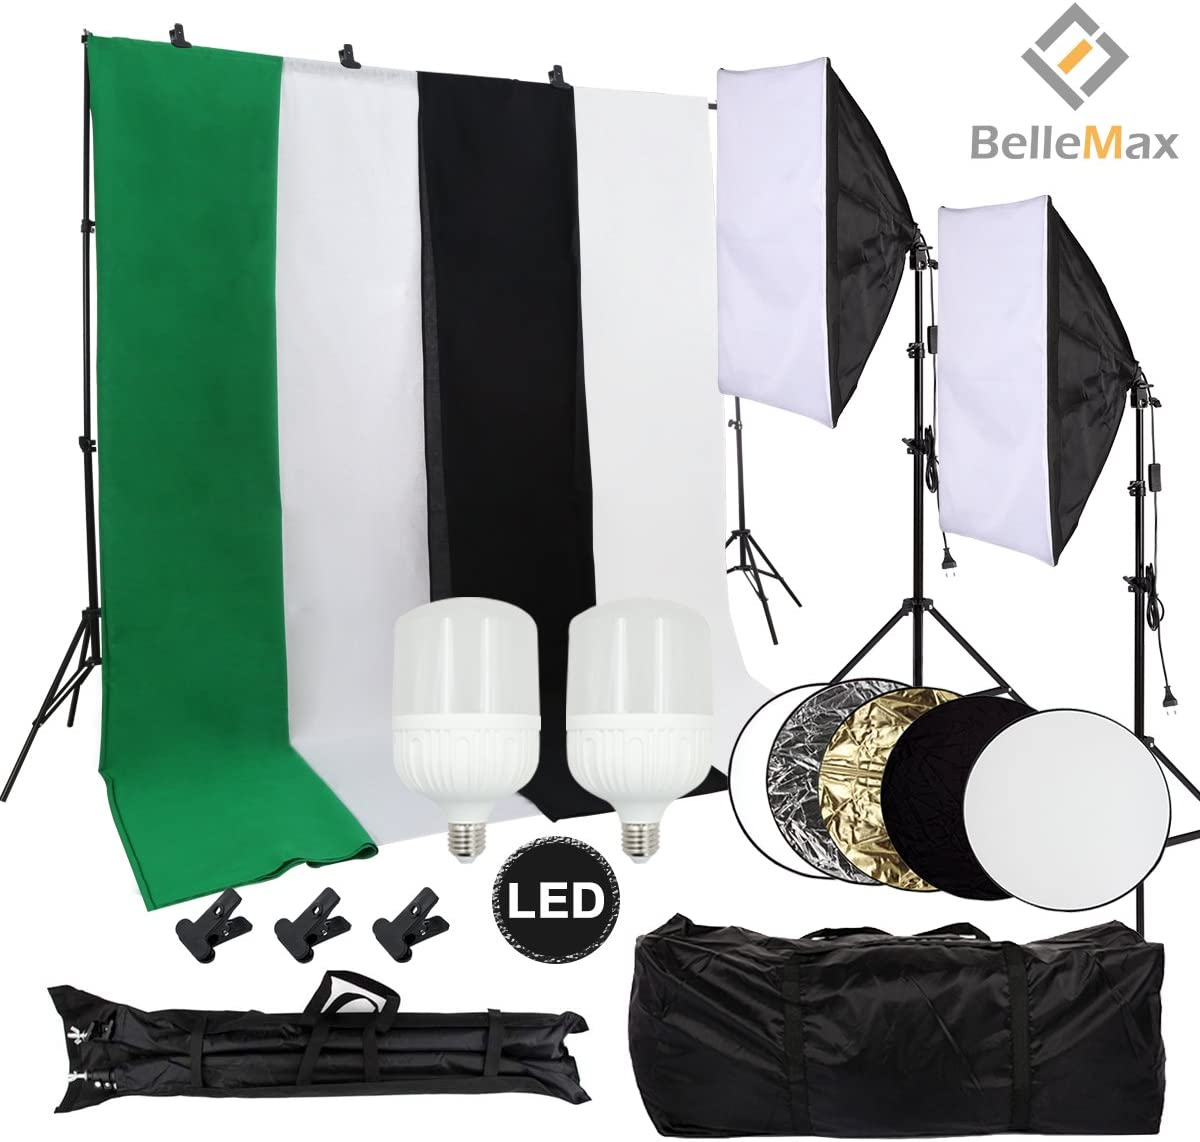 Including 2 pcs 28W LED Bulbs Belle Max Photography Softbox Lighting Kit Black//2xWhite//Green Photo Studio with Adjustable Background Support System with 4 Backdrop Reflector and Carrying Bag.